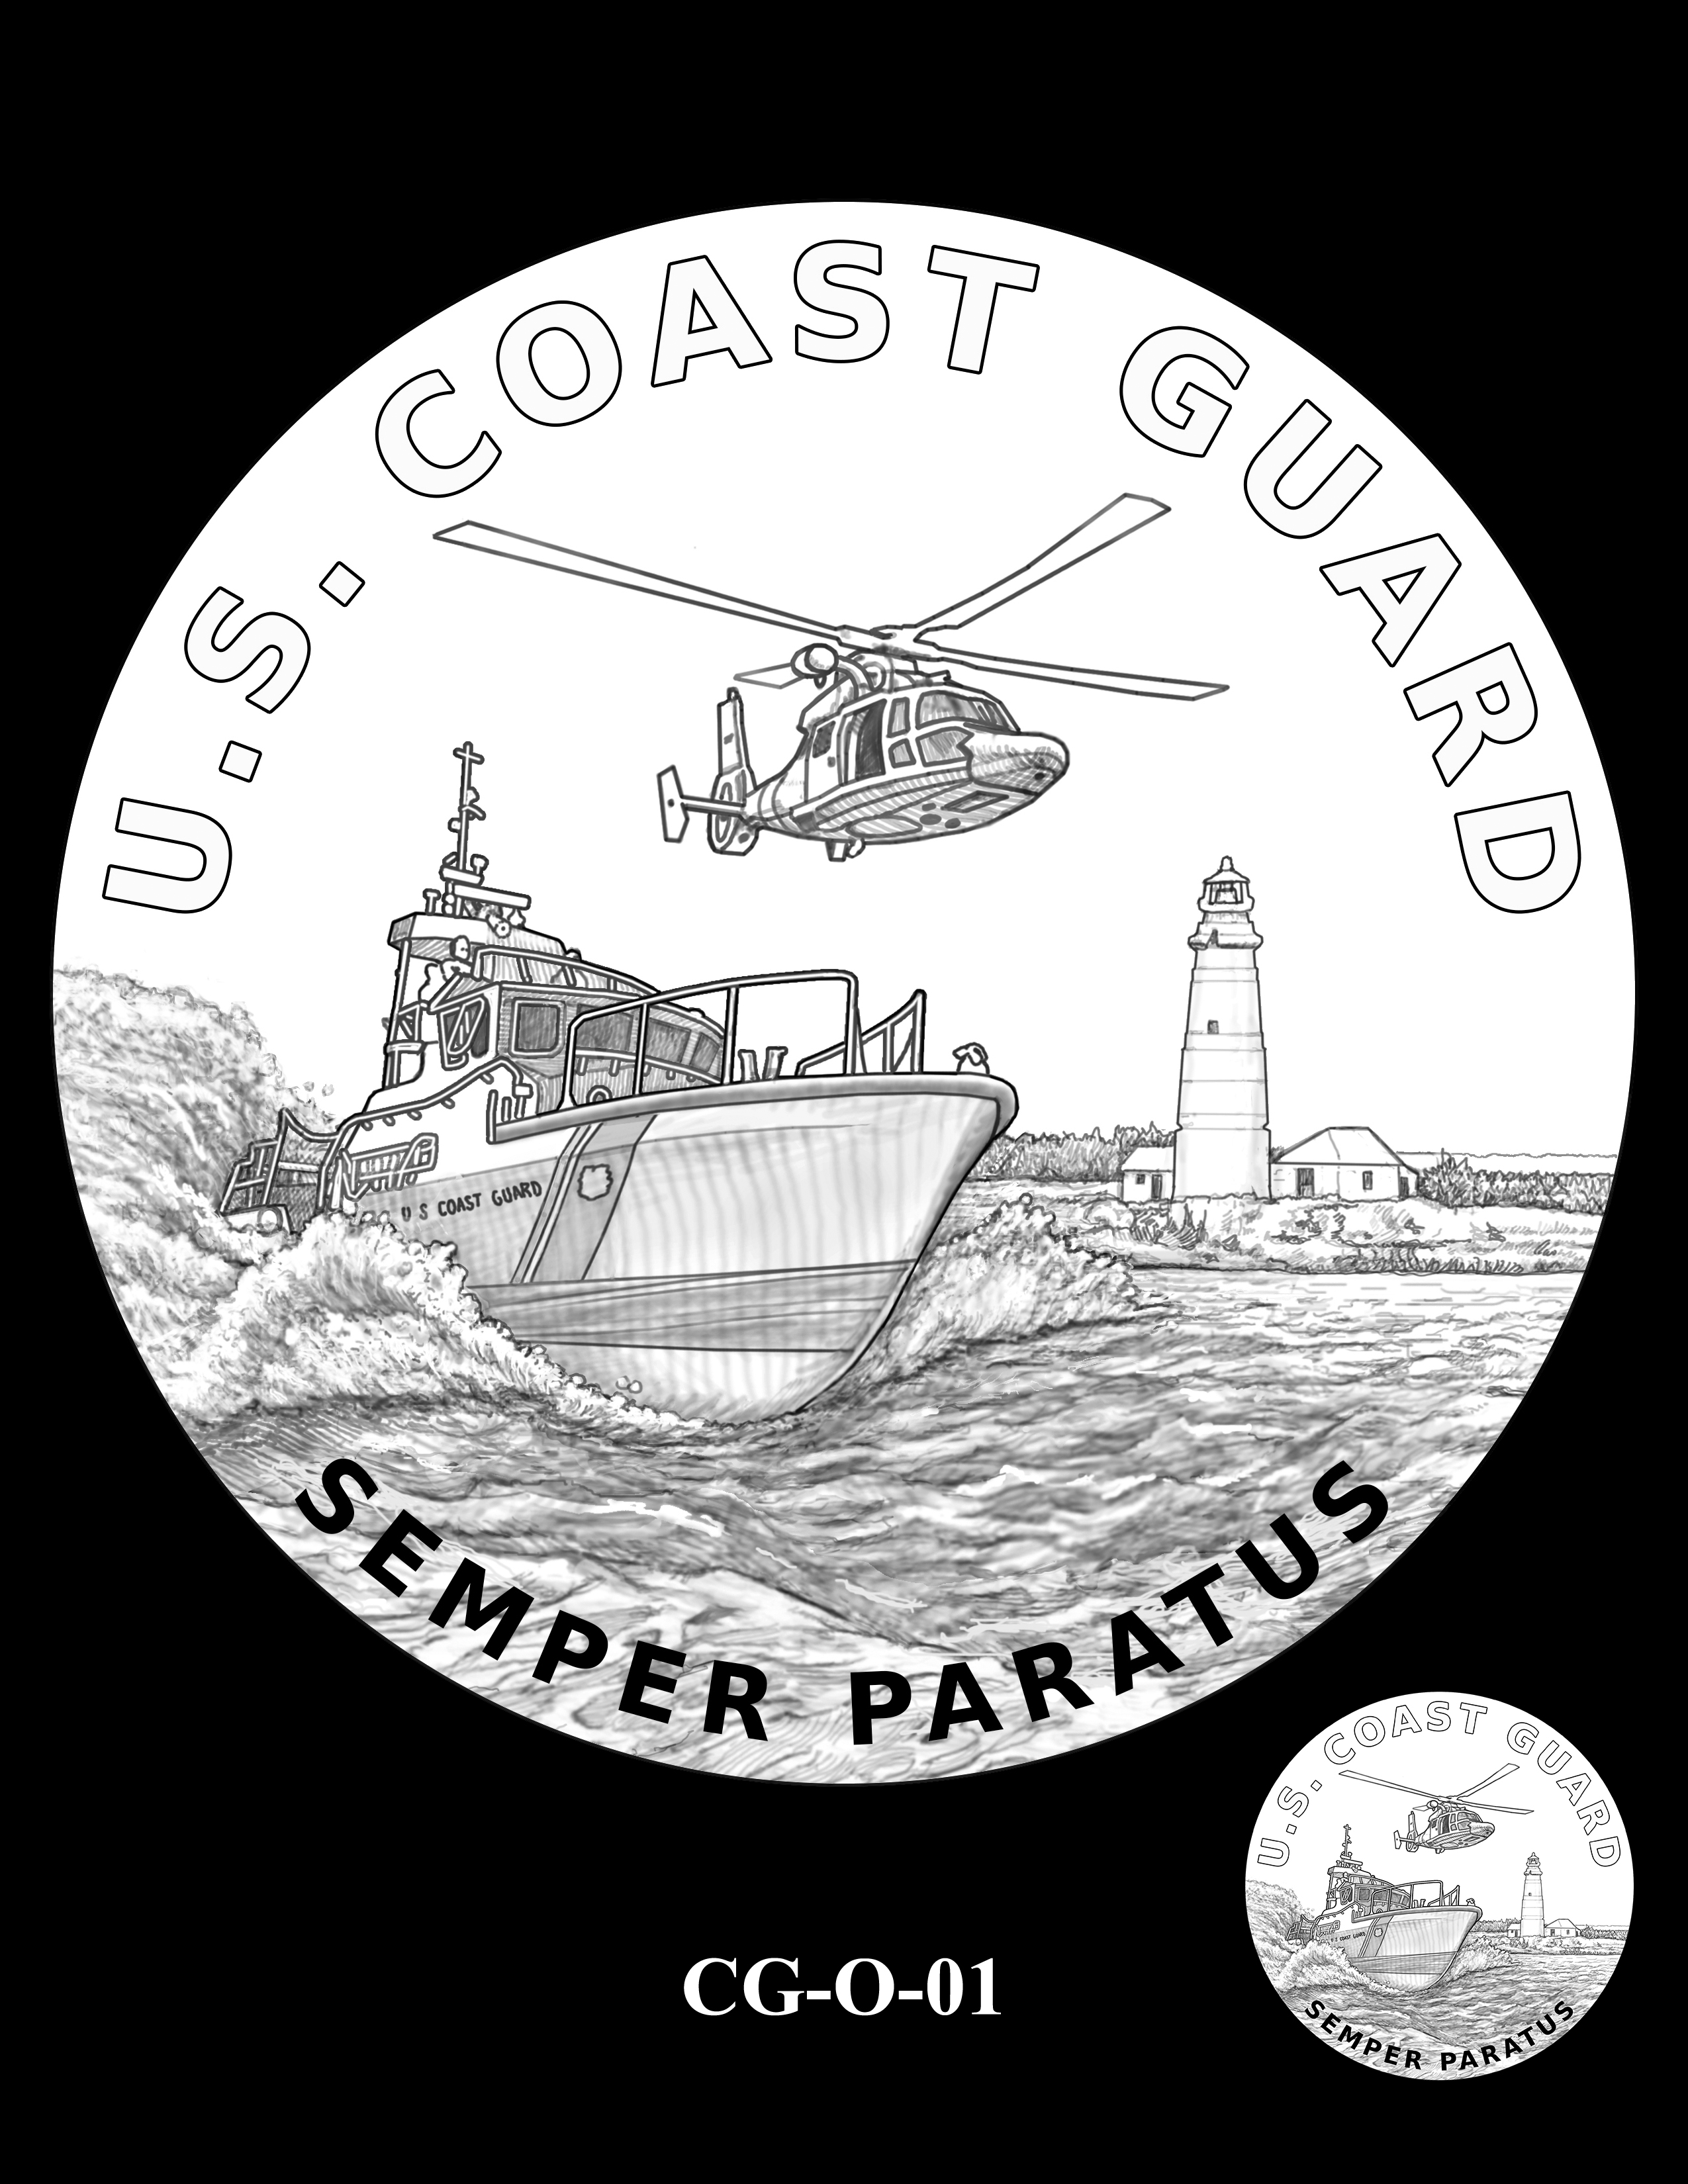 CG-O-01 -- Armed Forces Medal - Coast Guard